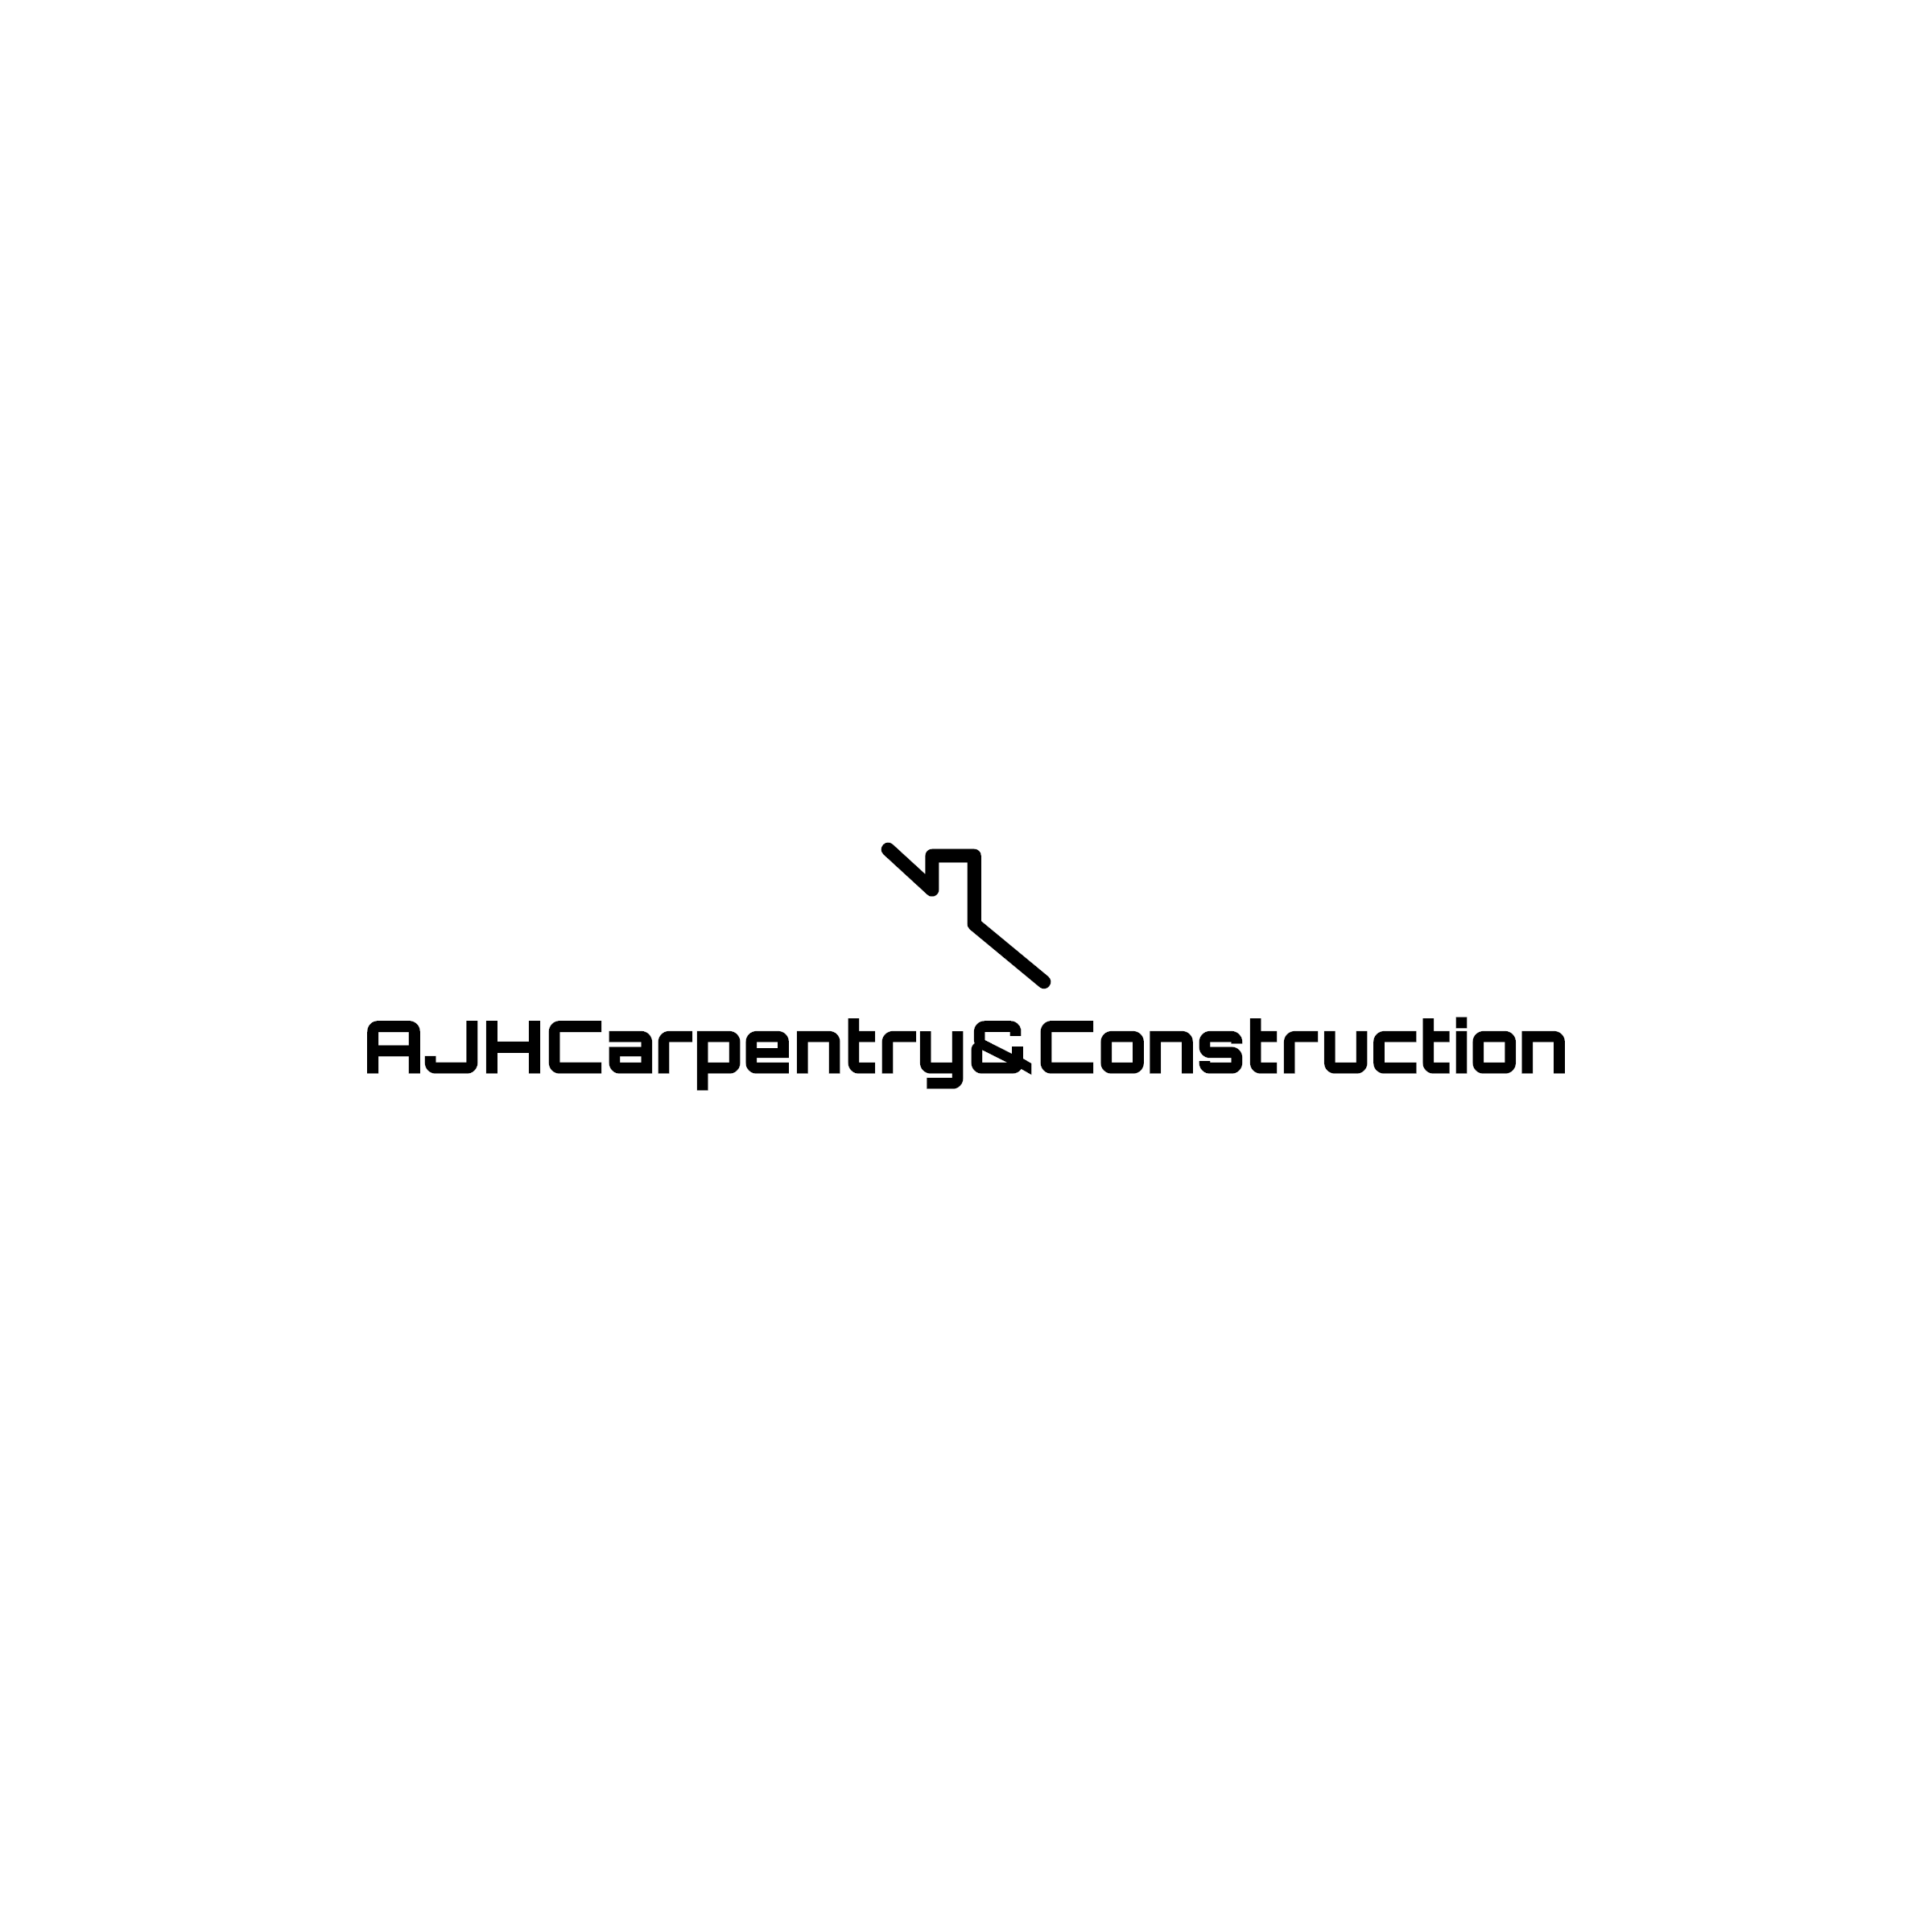 AJH Carpentry and Construction